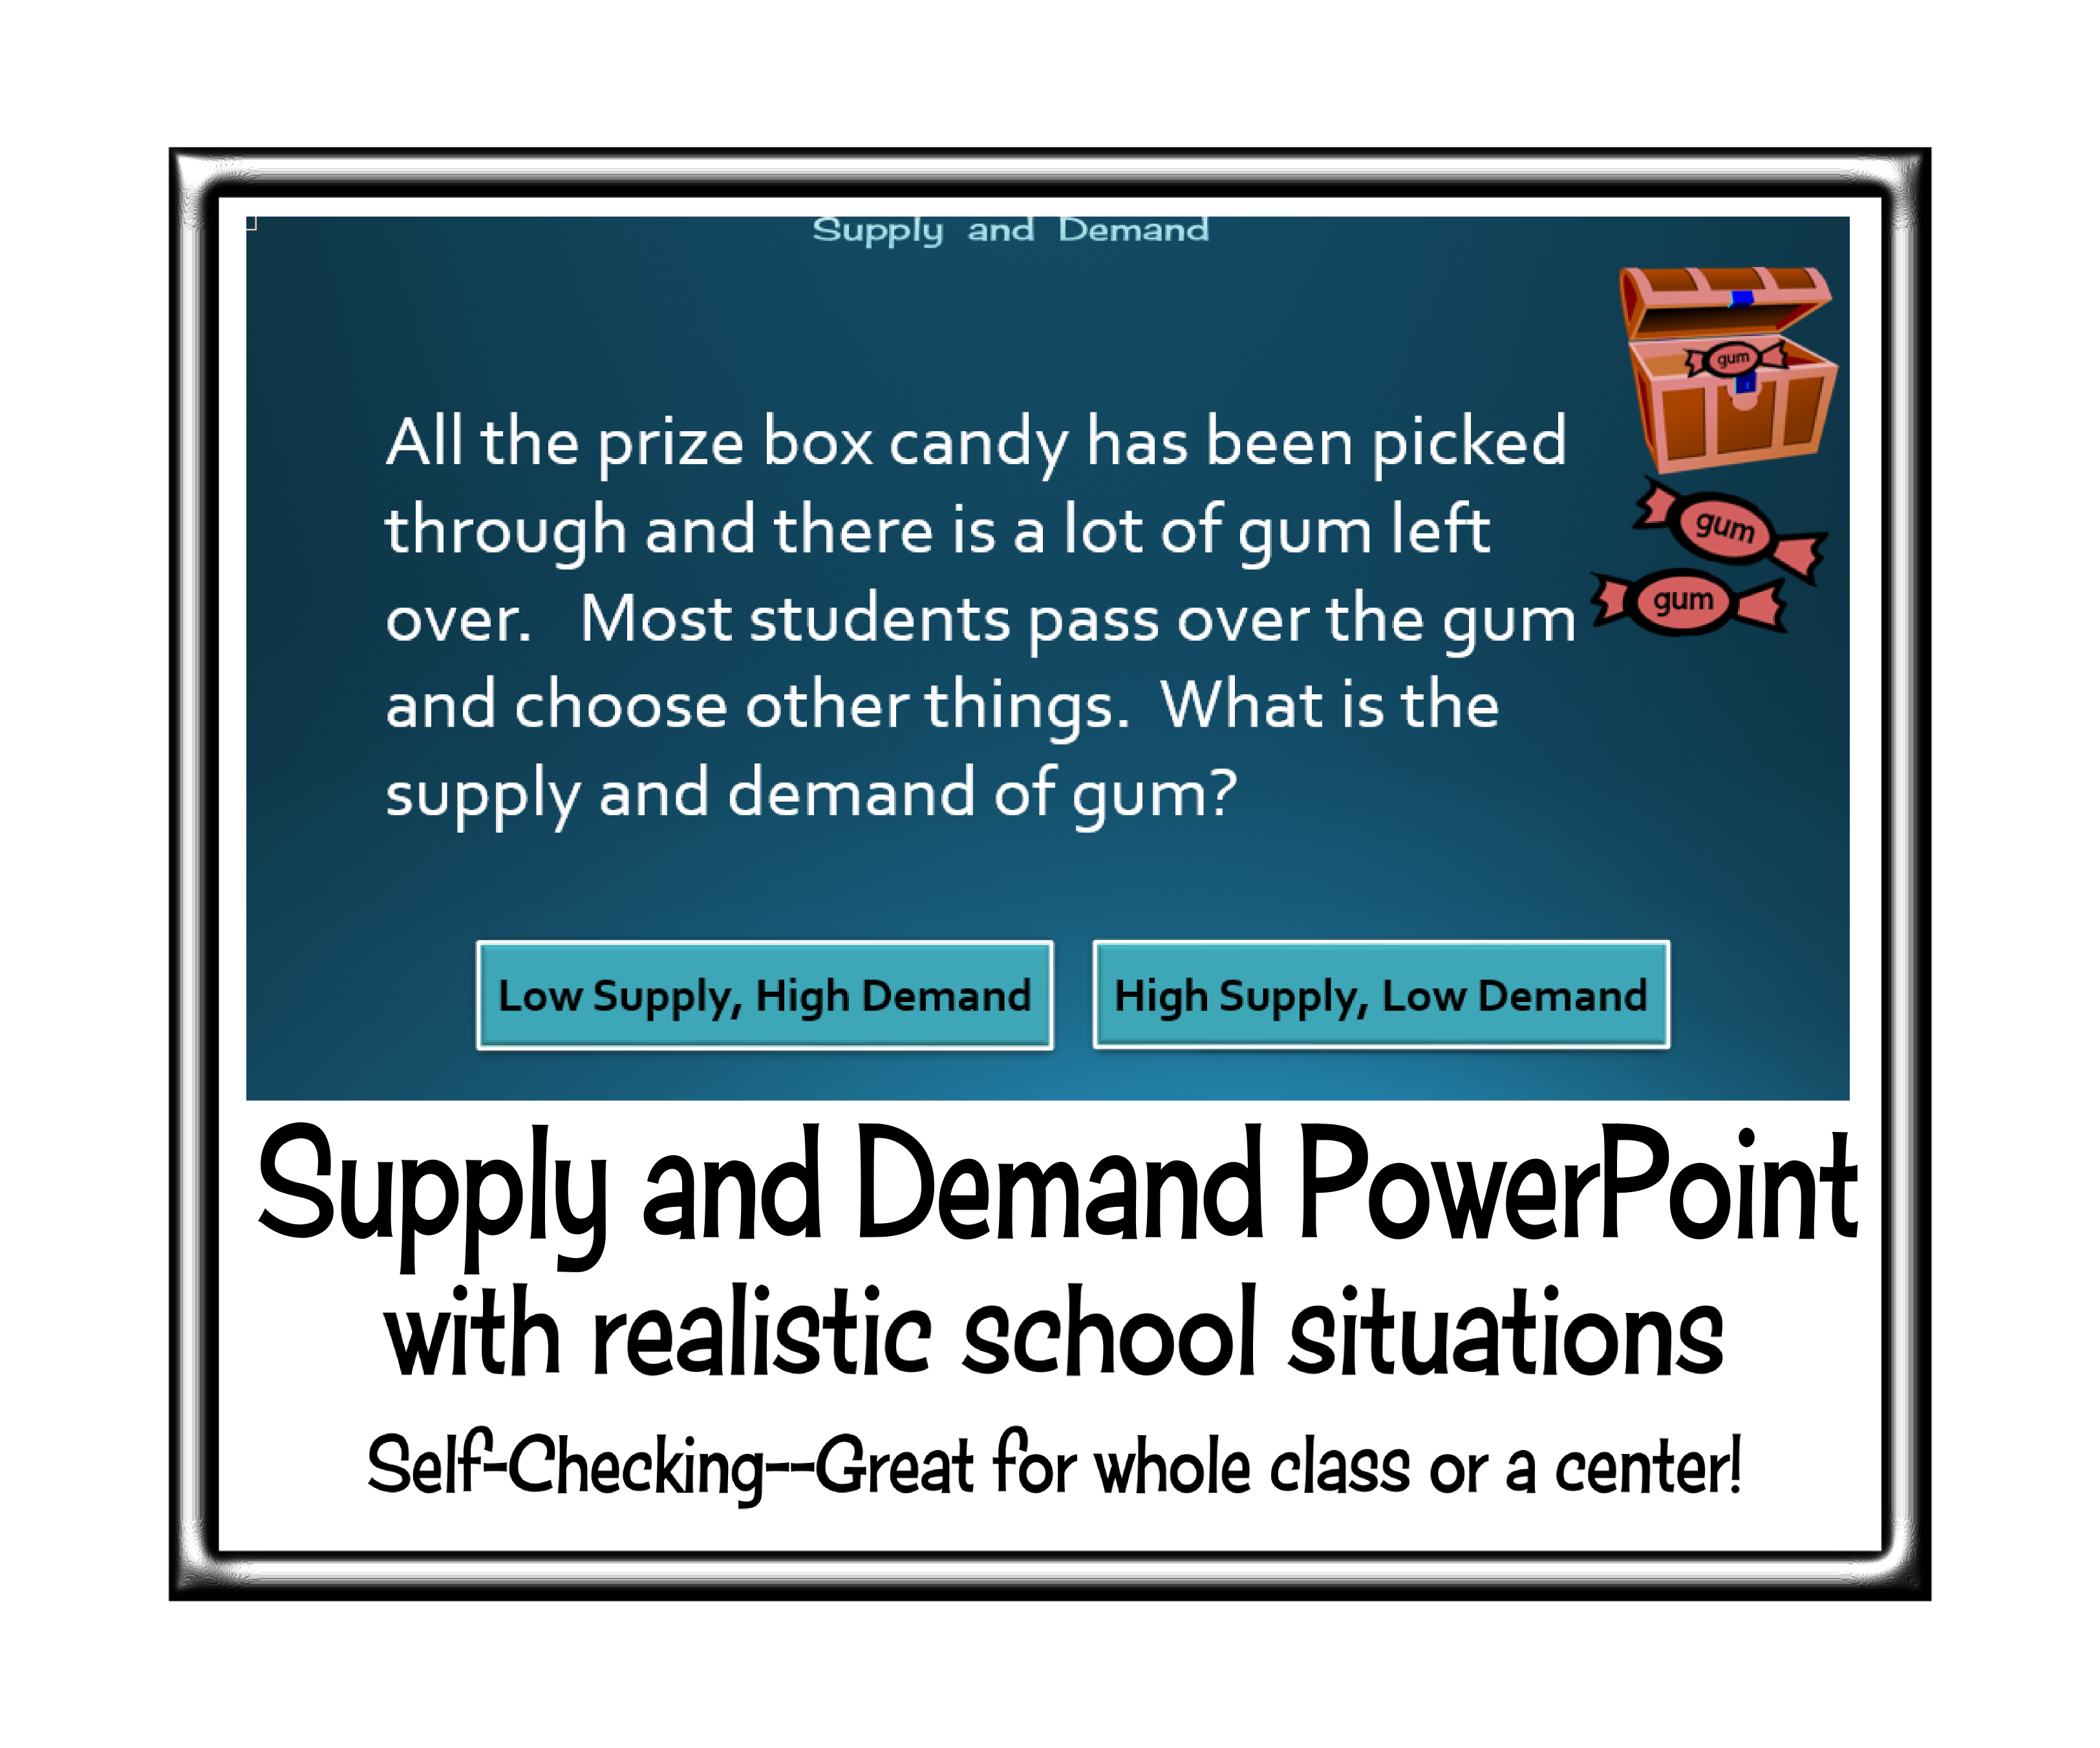 Supply And Demand Interactive Powerpoint With Realistic